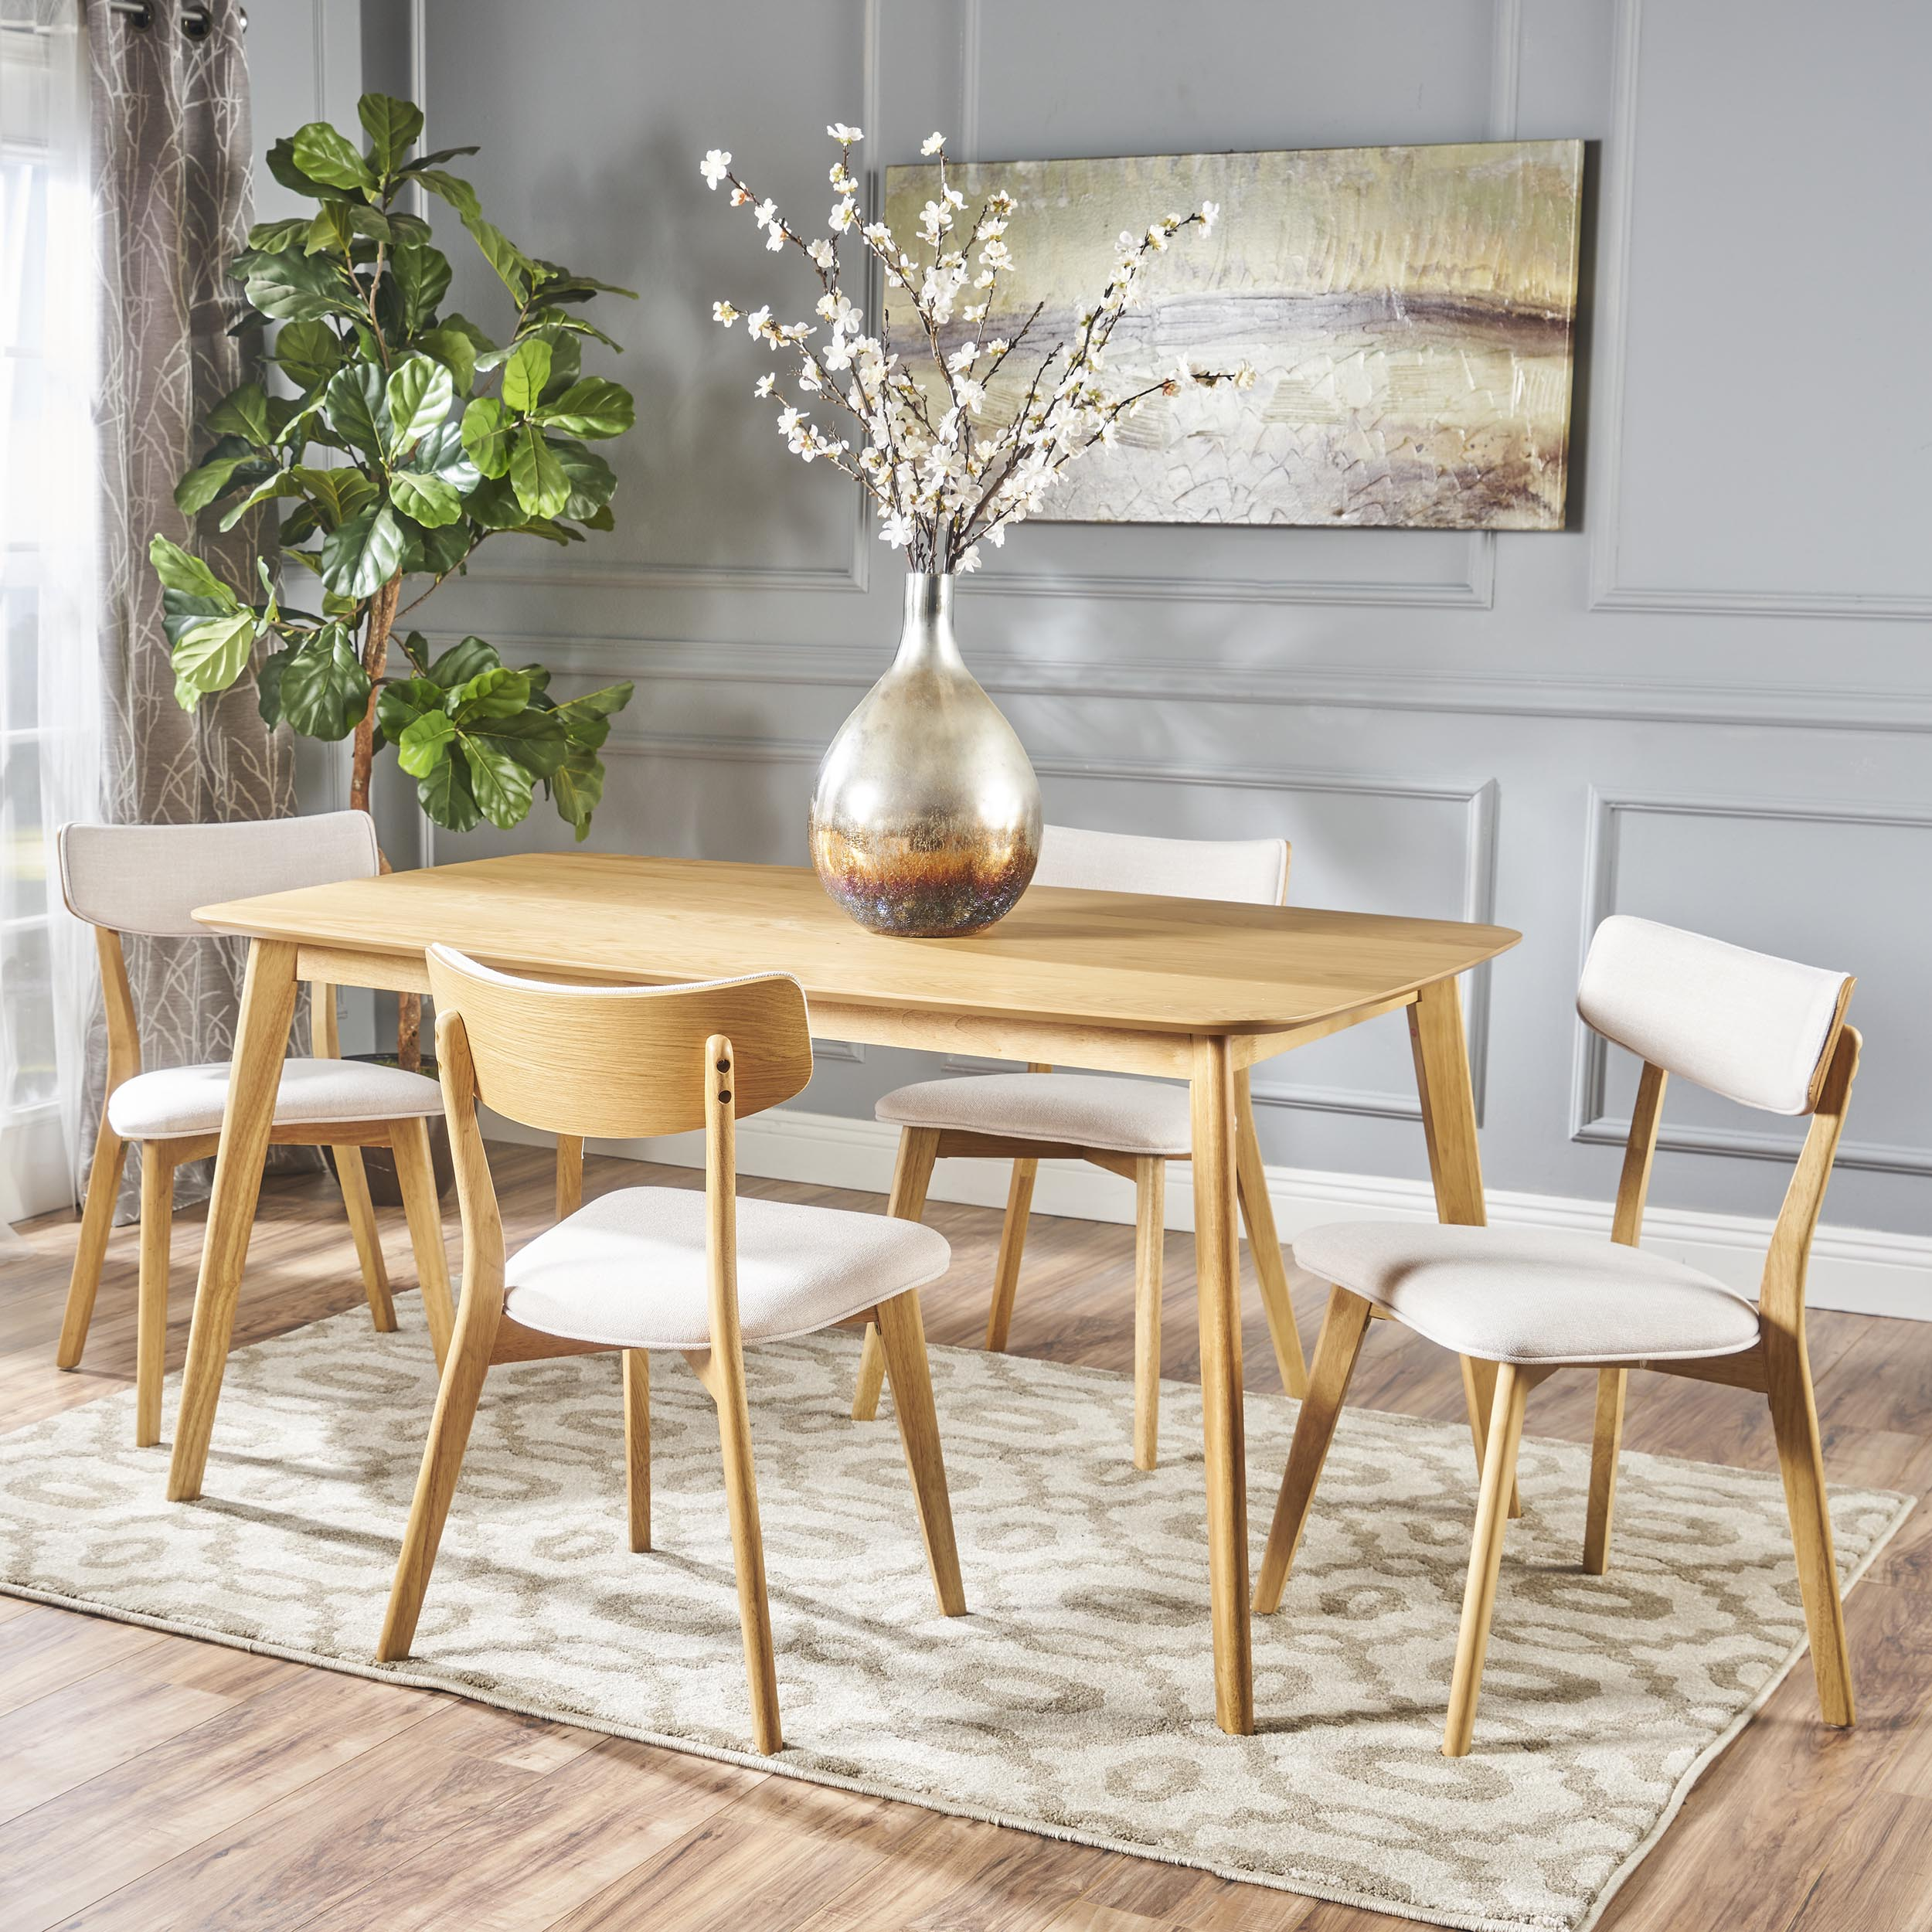 Noble House Lucca Mid Century Modern Wood 5 Piece Dining Set, Natural Oak, Beige